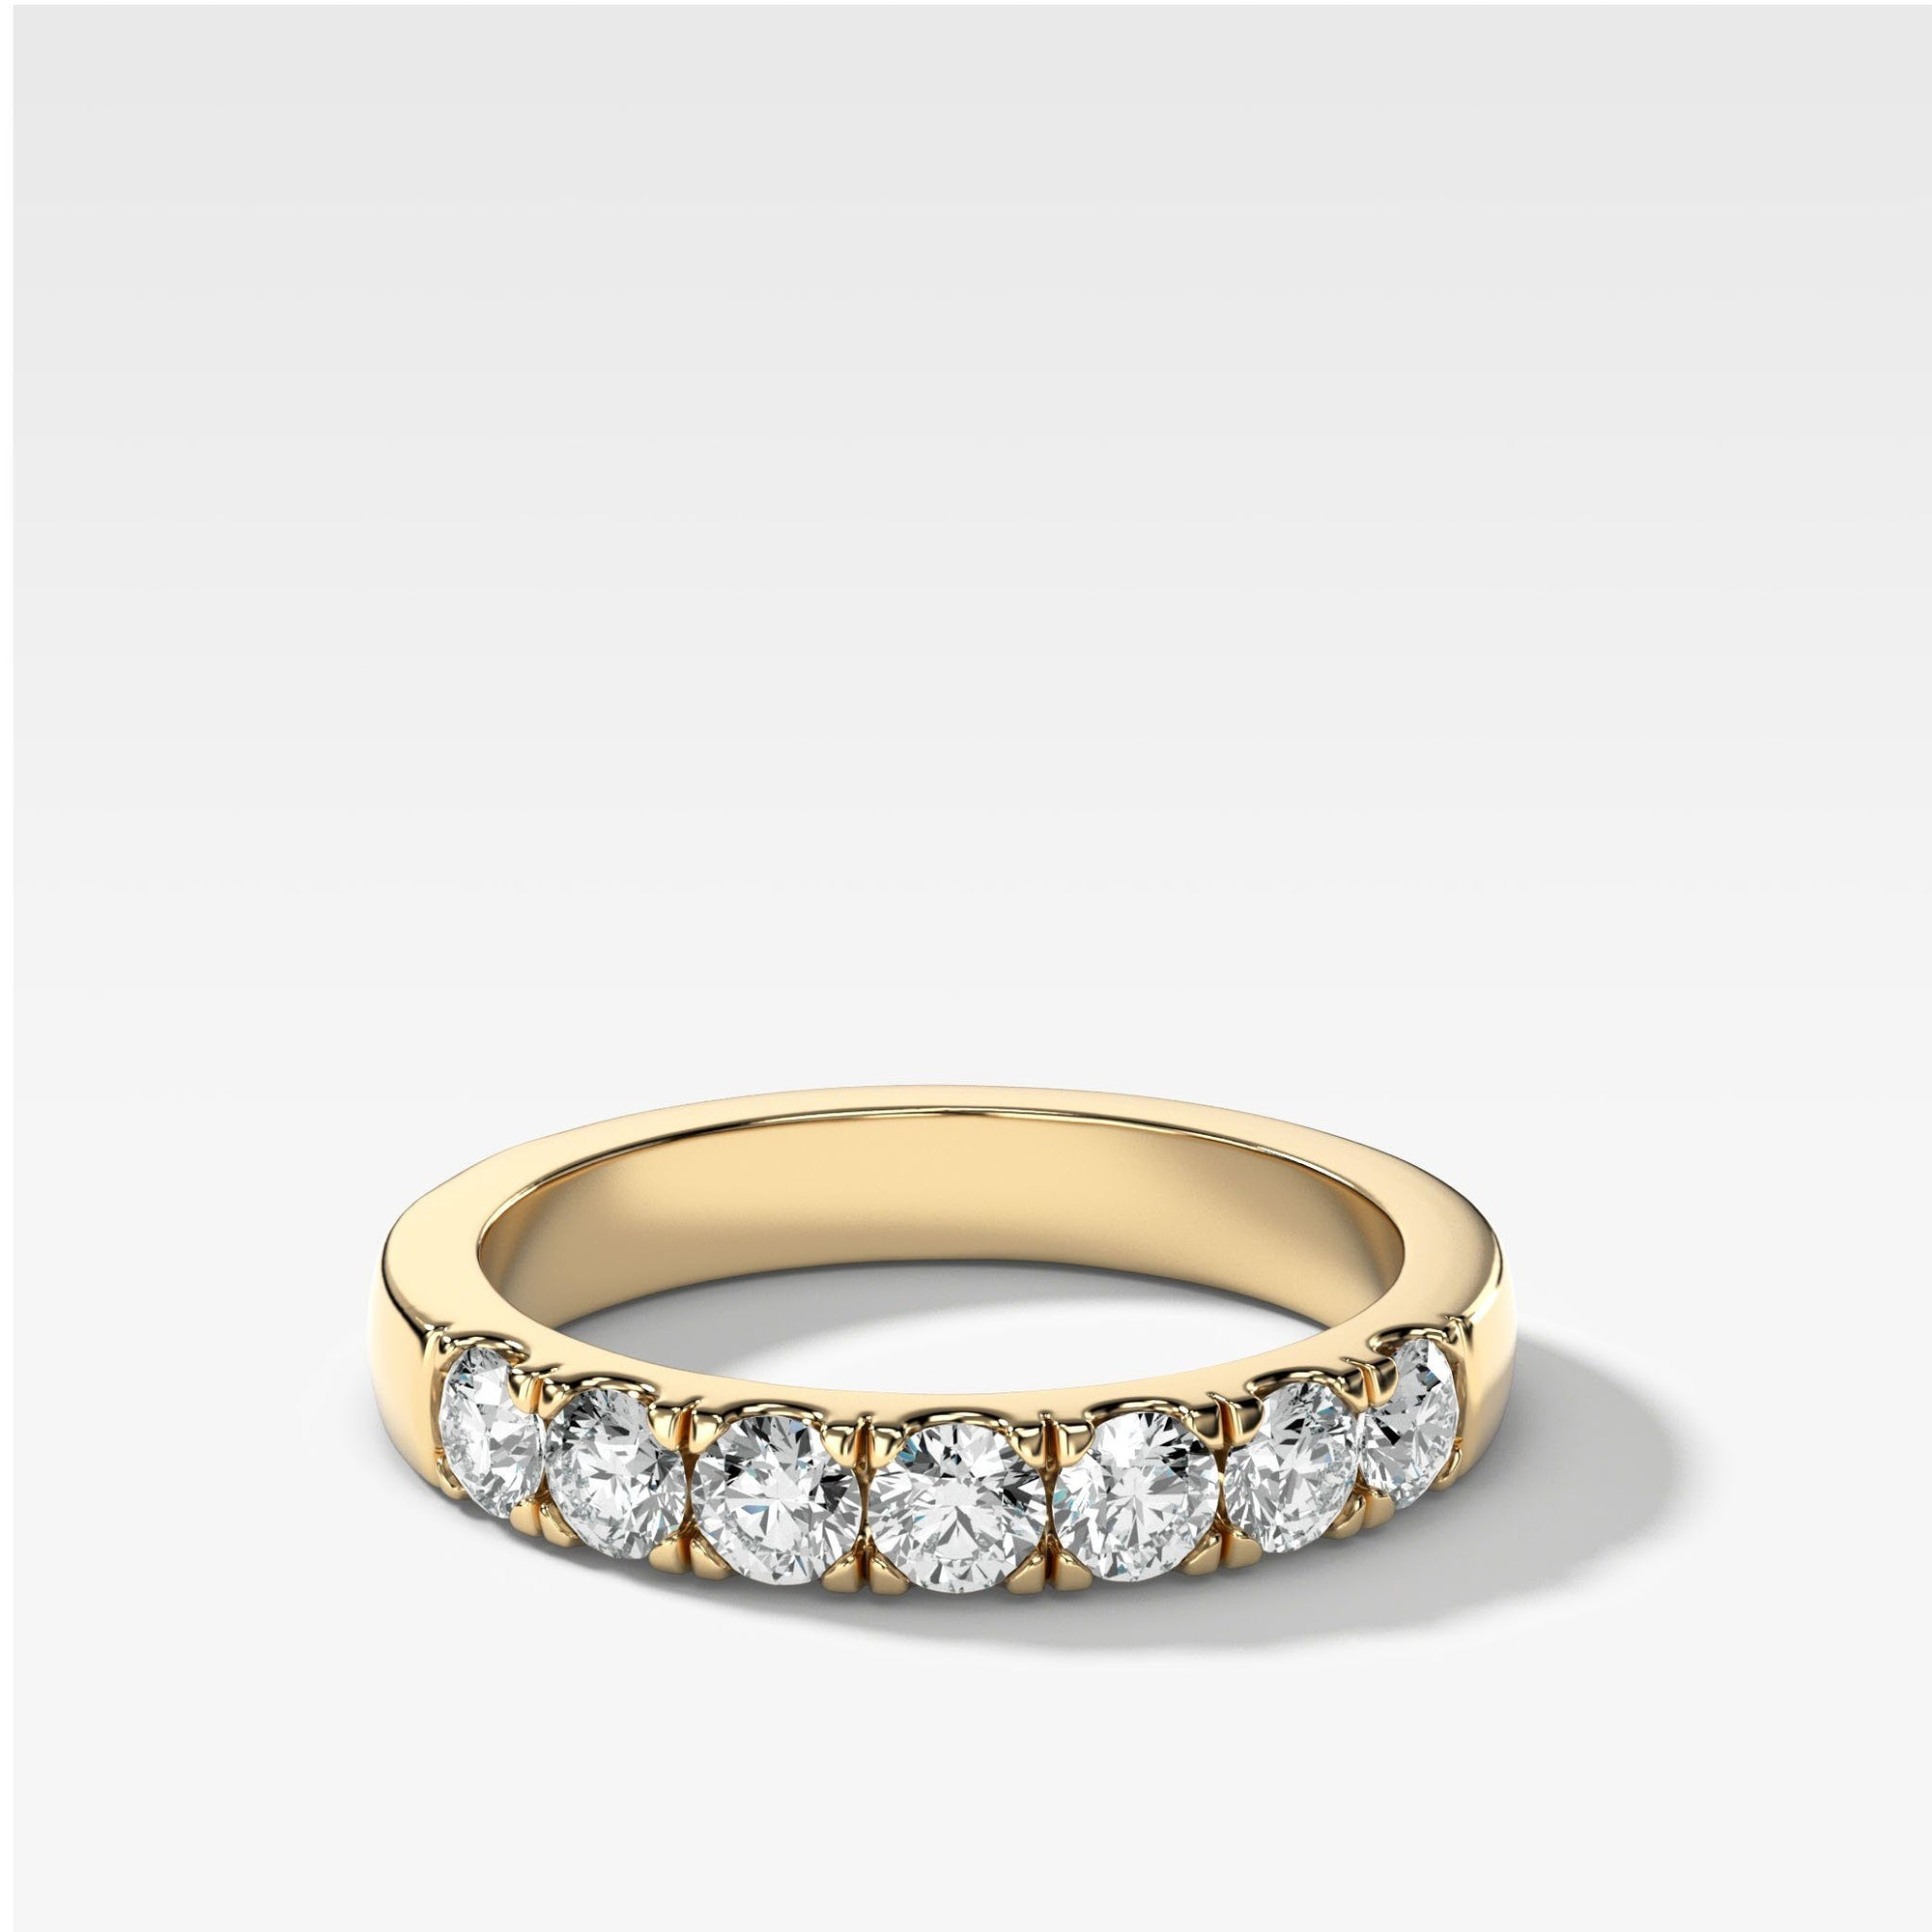 Jumbo Pave Diamond Wedding Band in Yellow Gold by Good Stone